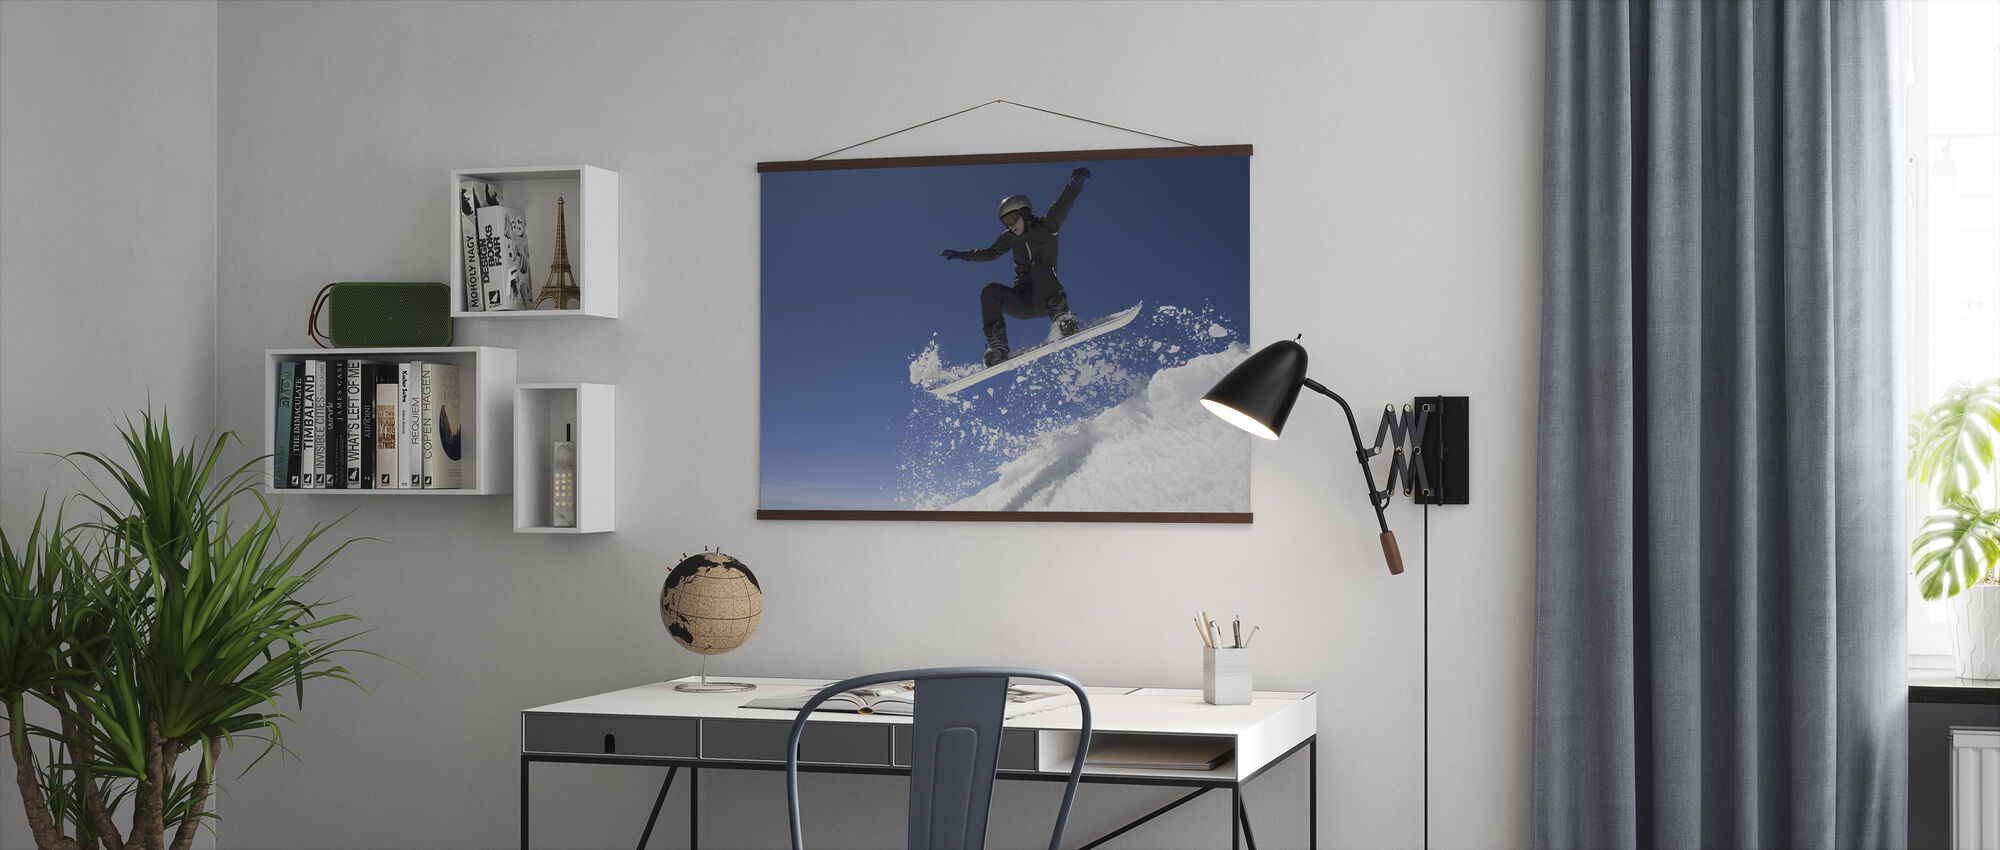 Snowboarder Jumping through Air - Poster - Office